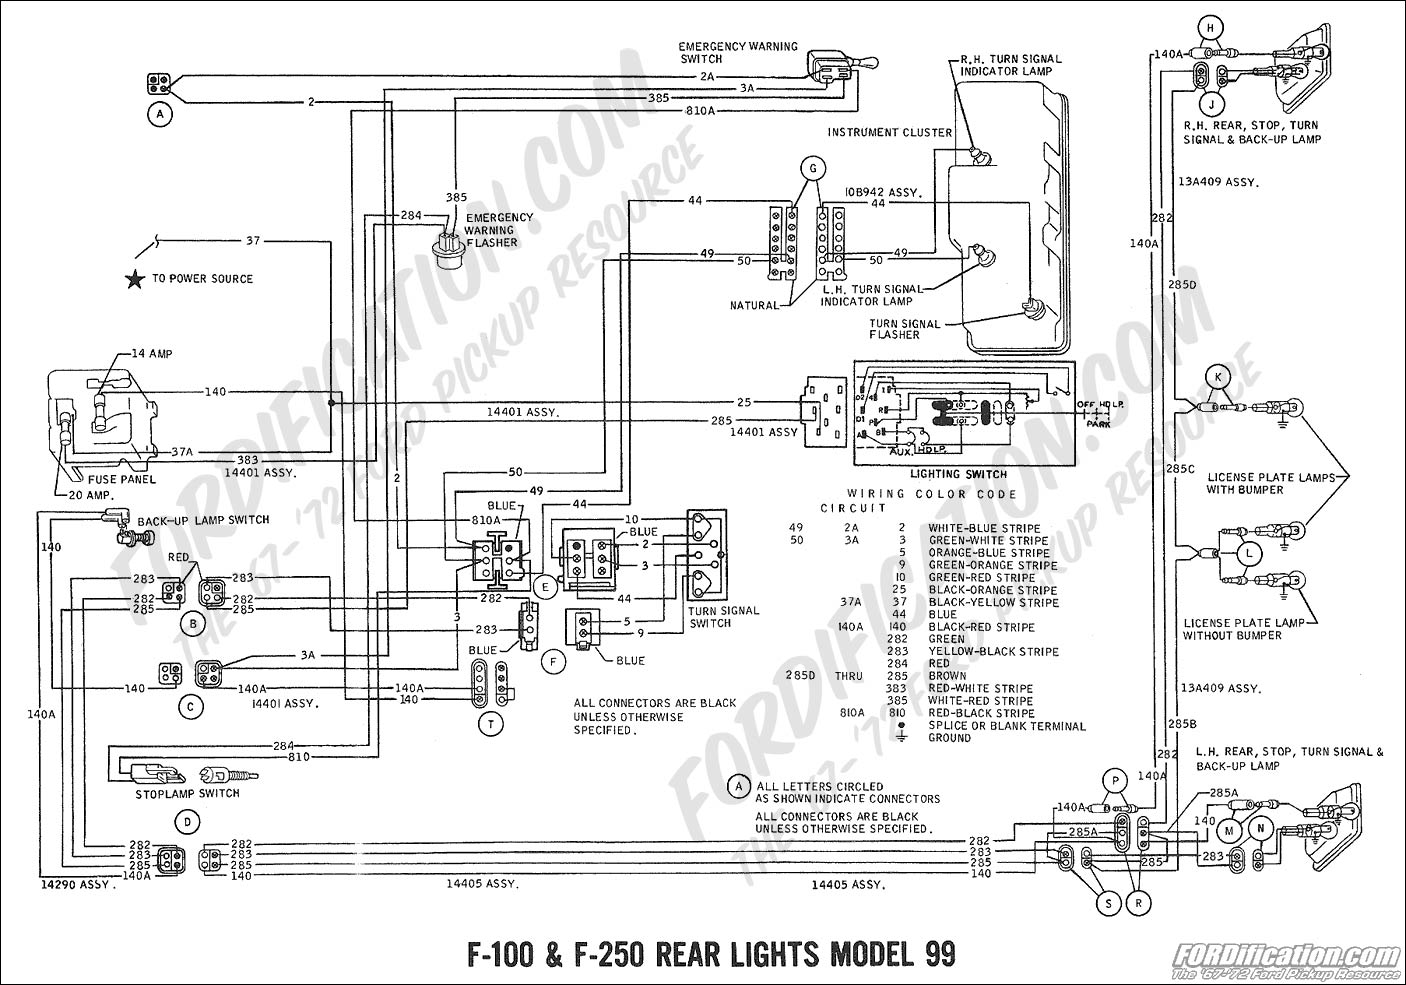 wiring_69rearlights model99 circuits \u003e 99 civic wiring diagram courtesy lights l21935 next gr 1999 civic wiring diagram at gsmx.co